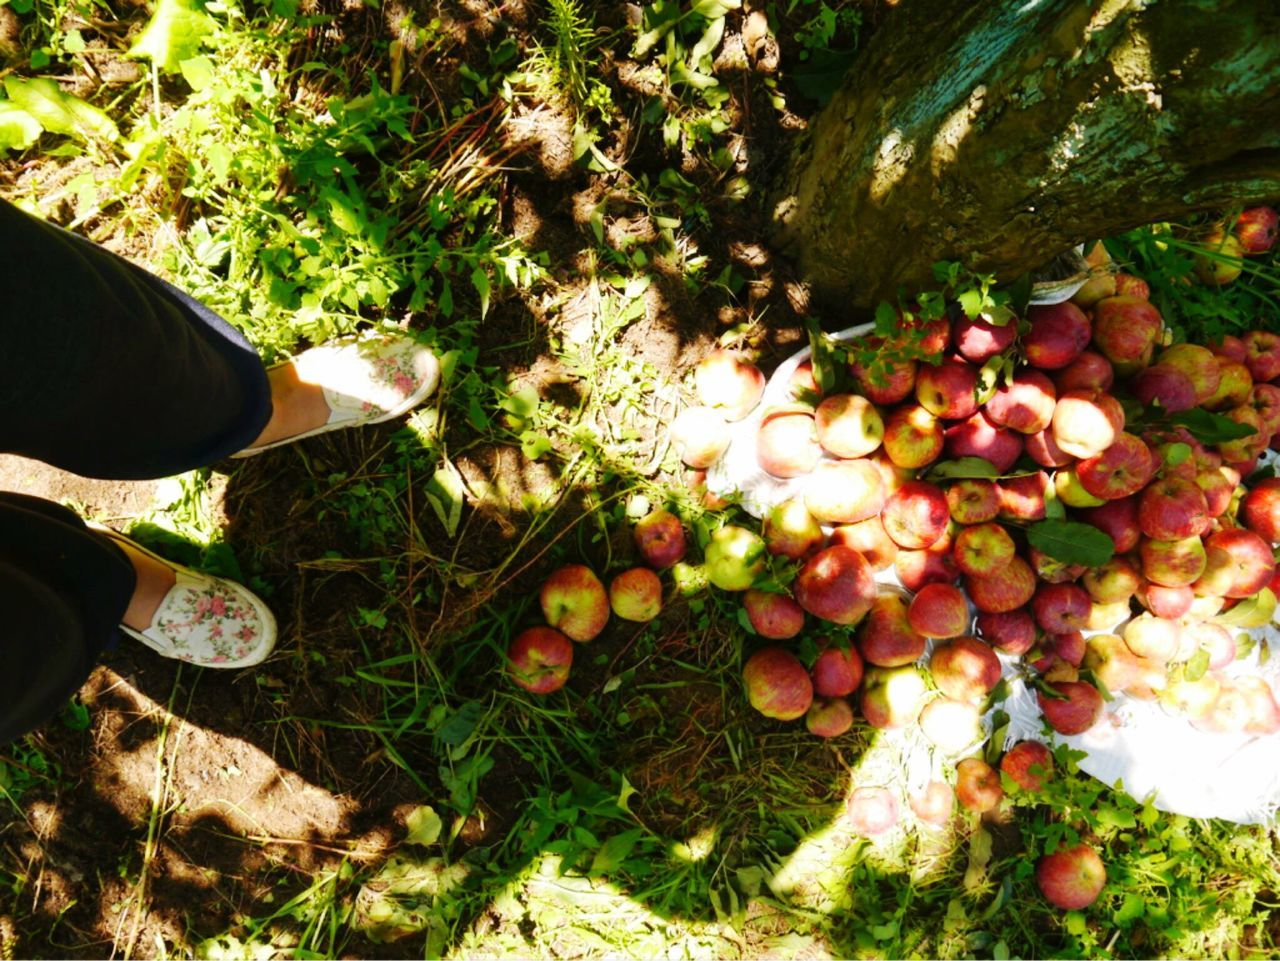 fruit, food and drink, one person, real people, healthy eating, growth, freshness, day, food, high angle view, outdoors, abundance, human body part, low section, nature, healthy lifestyle, human hand, grass, tree, people